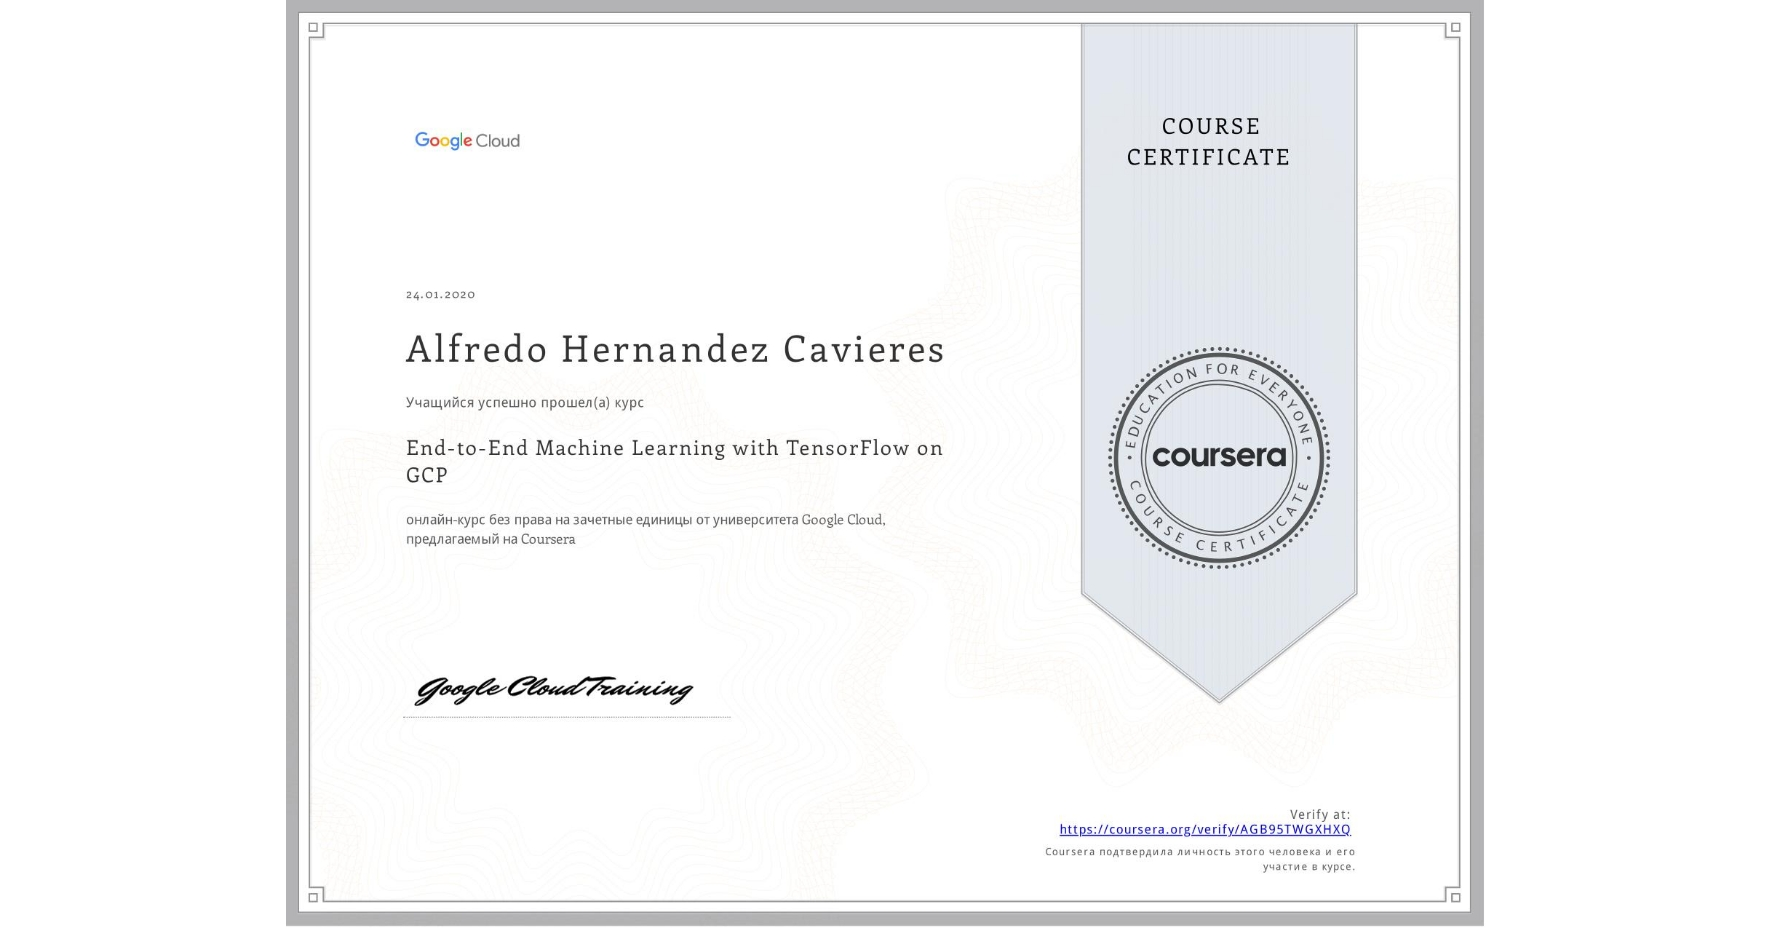 View certificate for Alfredo Hernandez Cavieres, End-to-End Machine Learning with TensorFlow on GCP, an online non-credit course authorized by Google Cloud and offered through Coursera